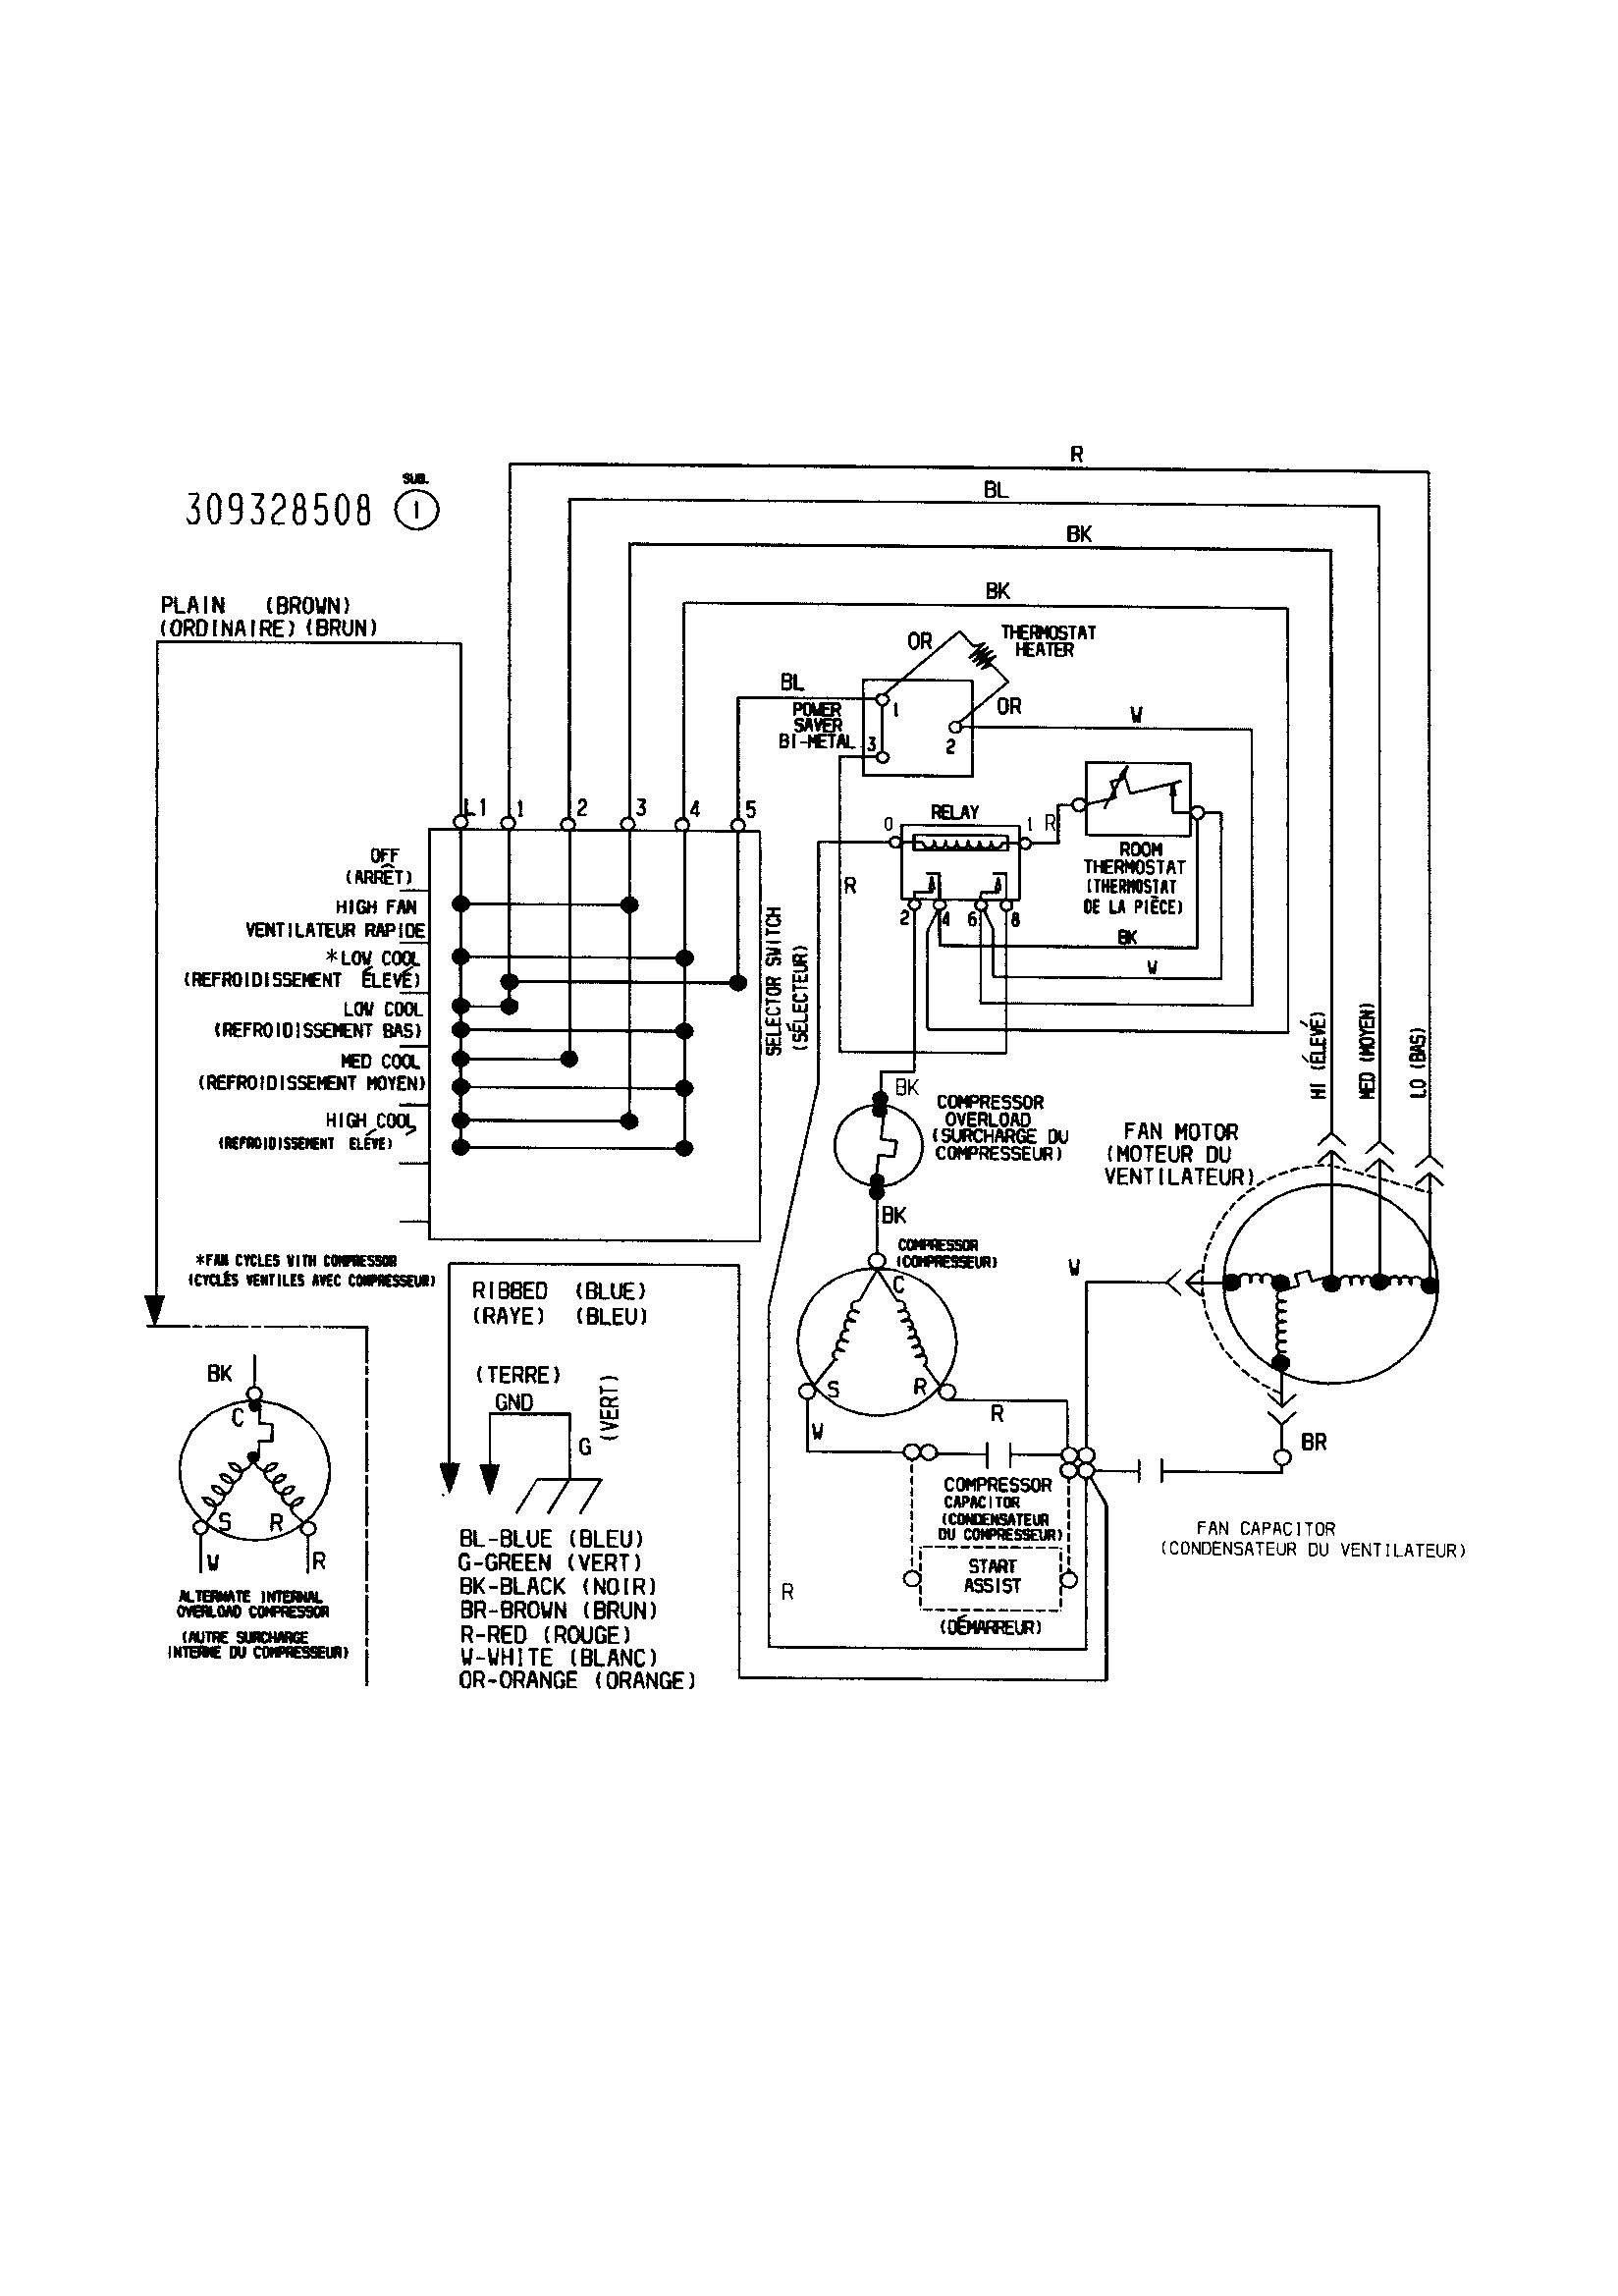 Dayton Air Compressor Wiring Diagram Dayton Hoist Wiring